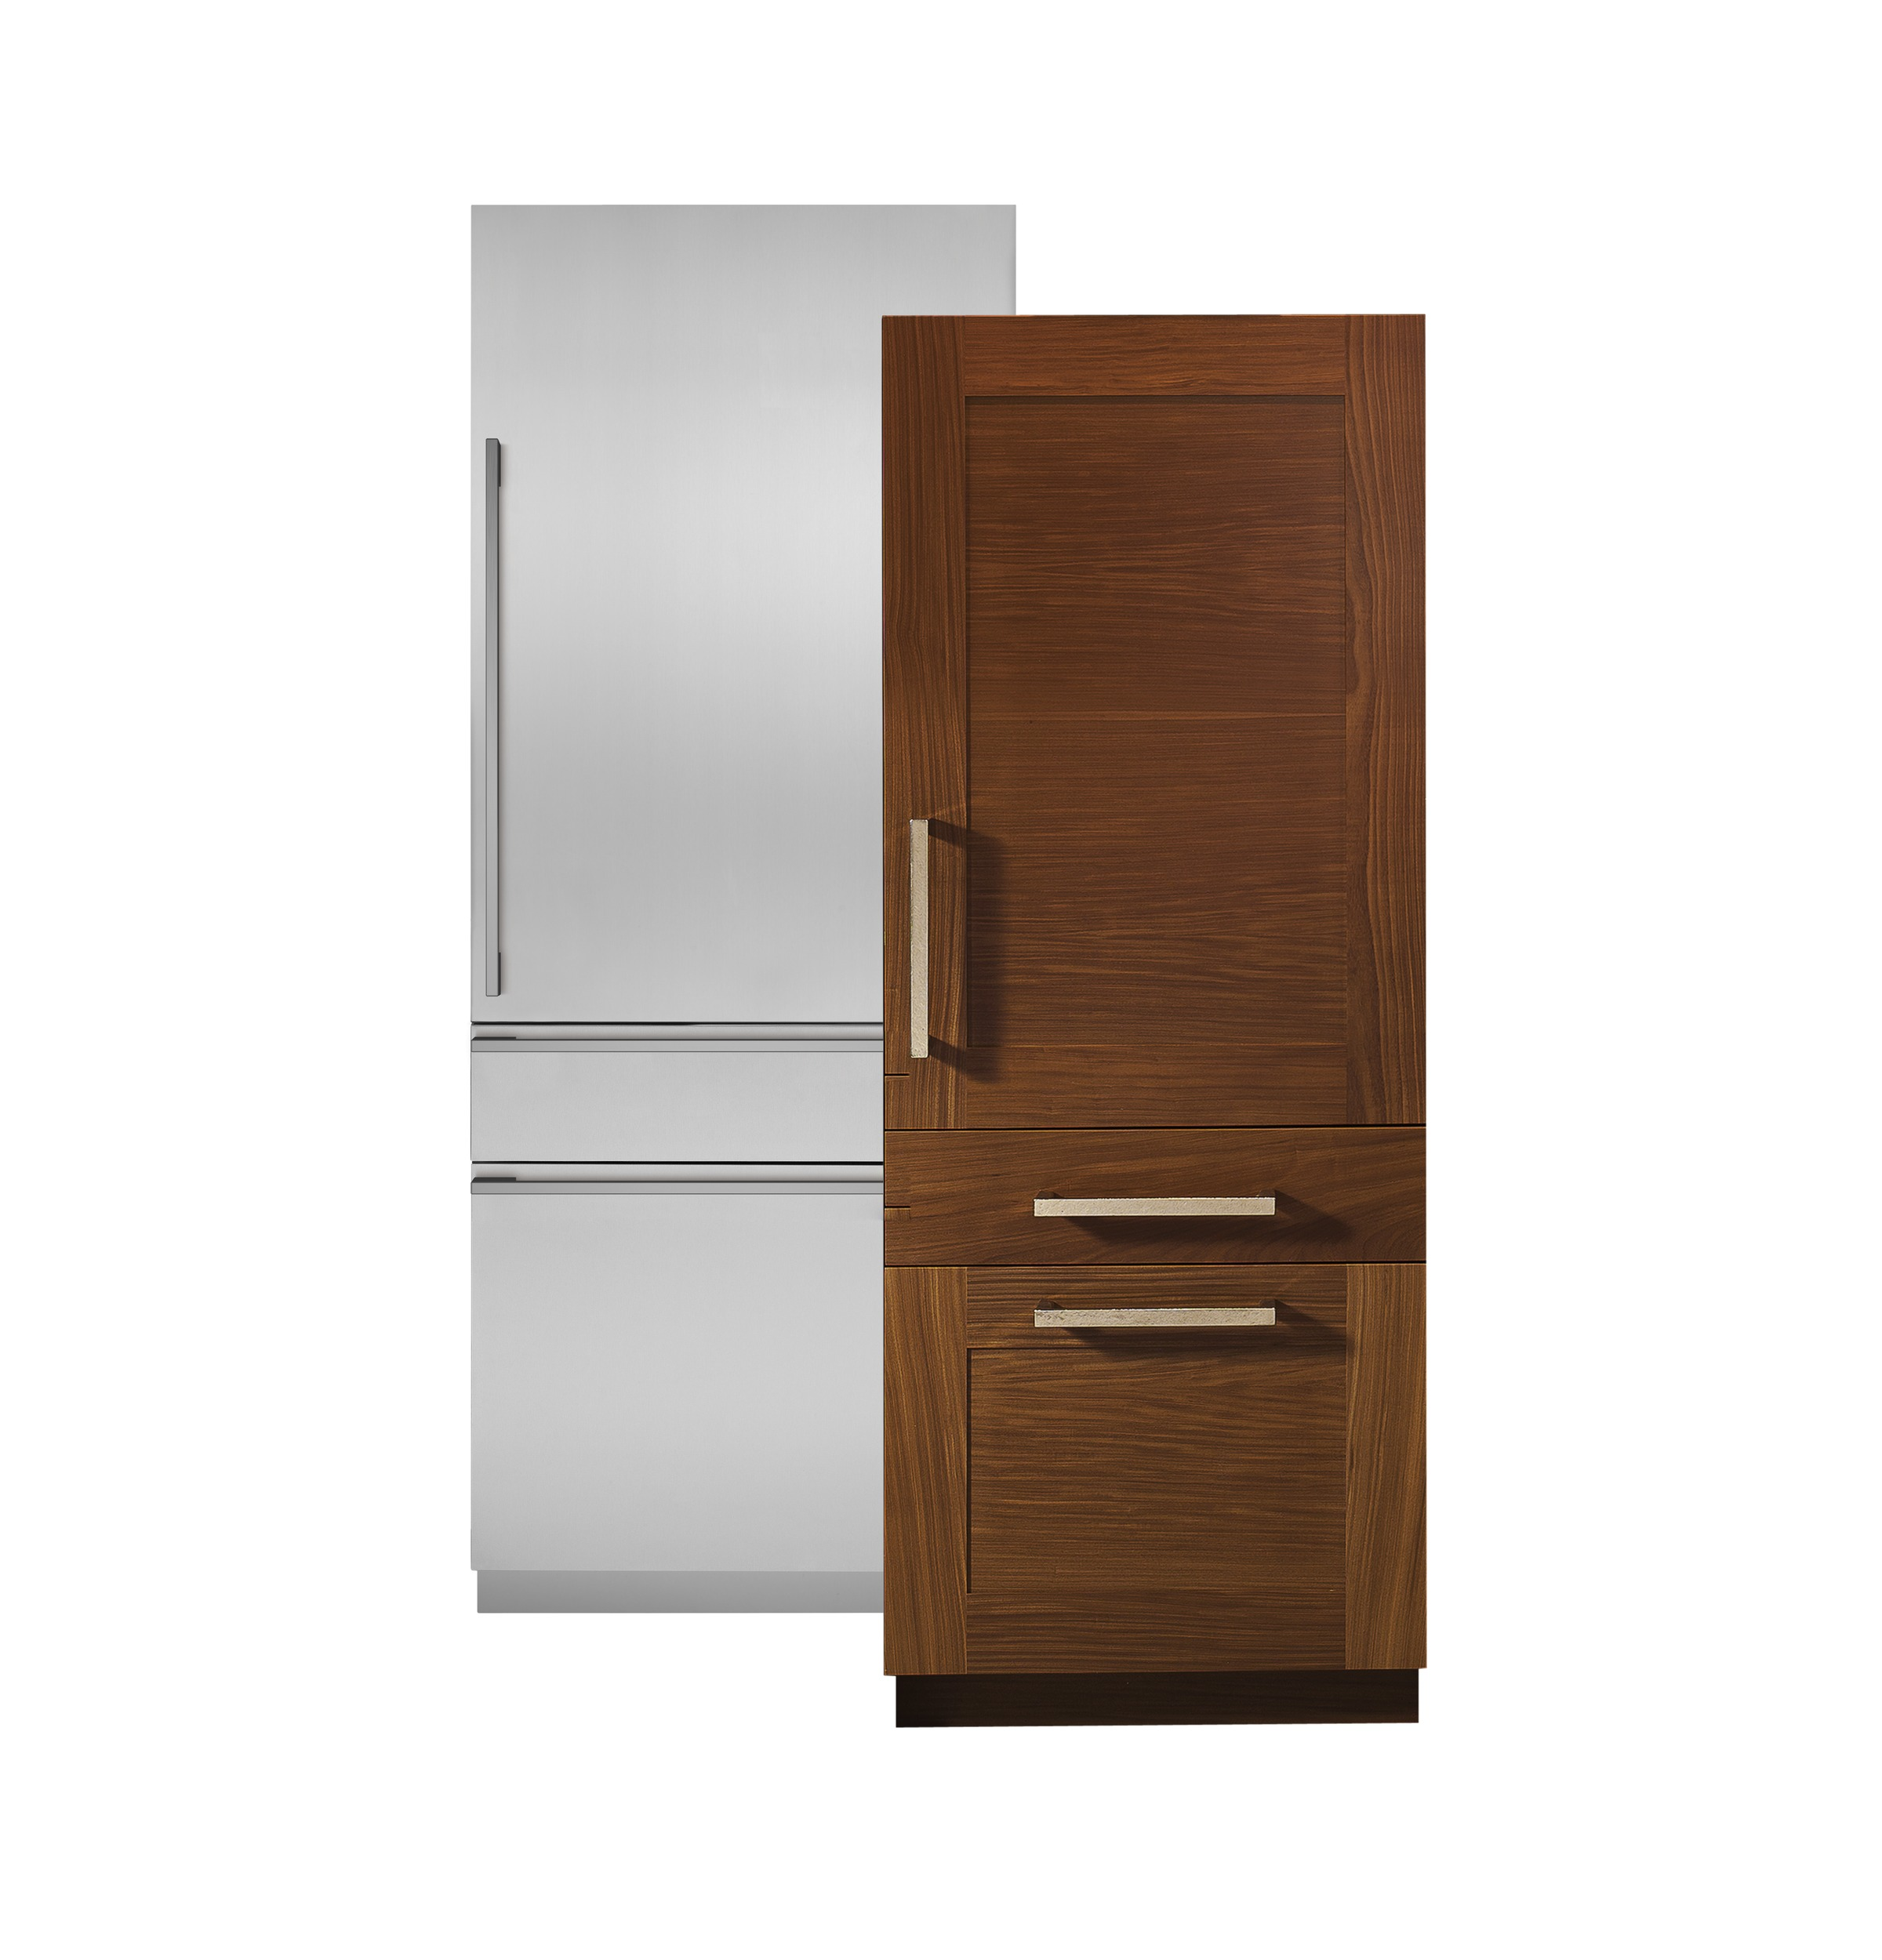 "Model: ZIC30GNHII | Monogram Monogram 30"" Integrated Customizable Refrigerator (for Single or Dual Installation)"